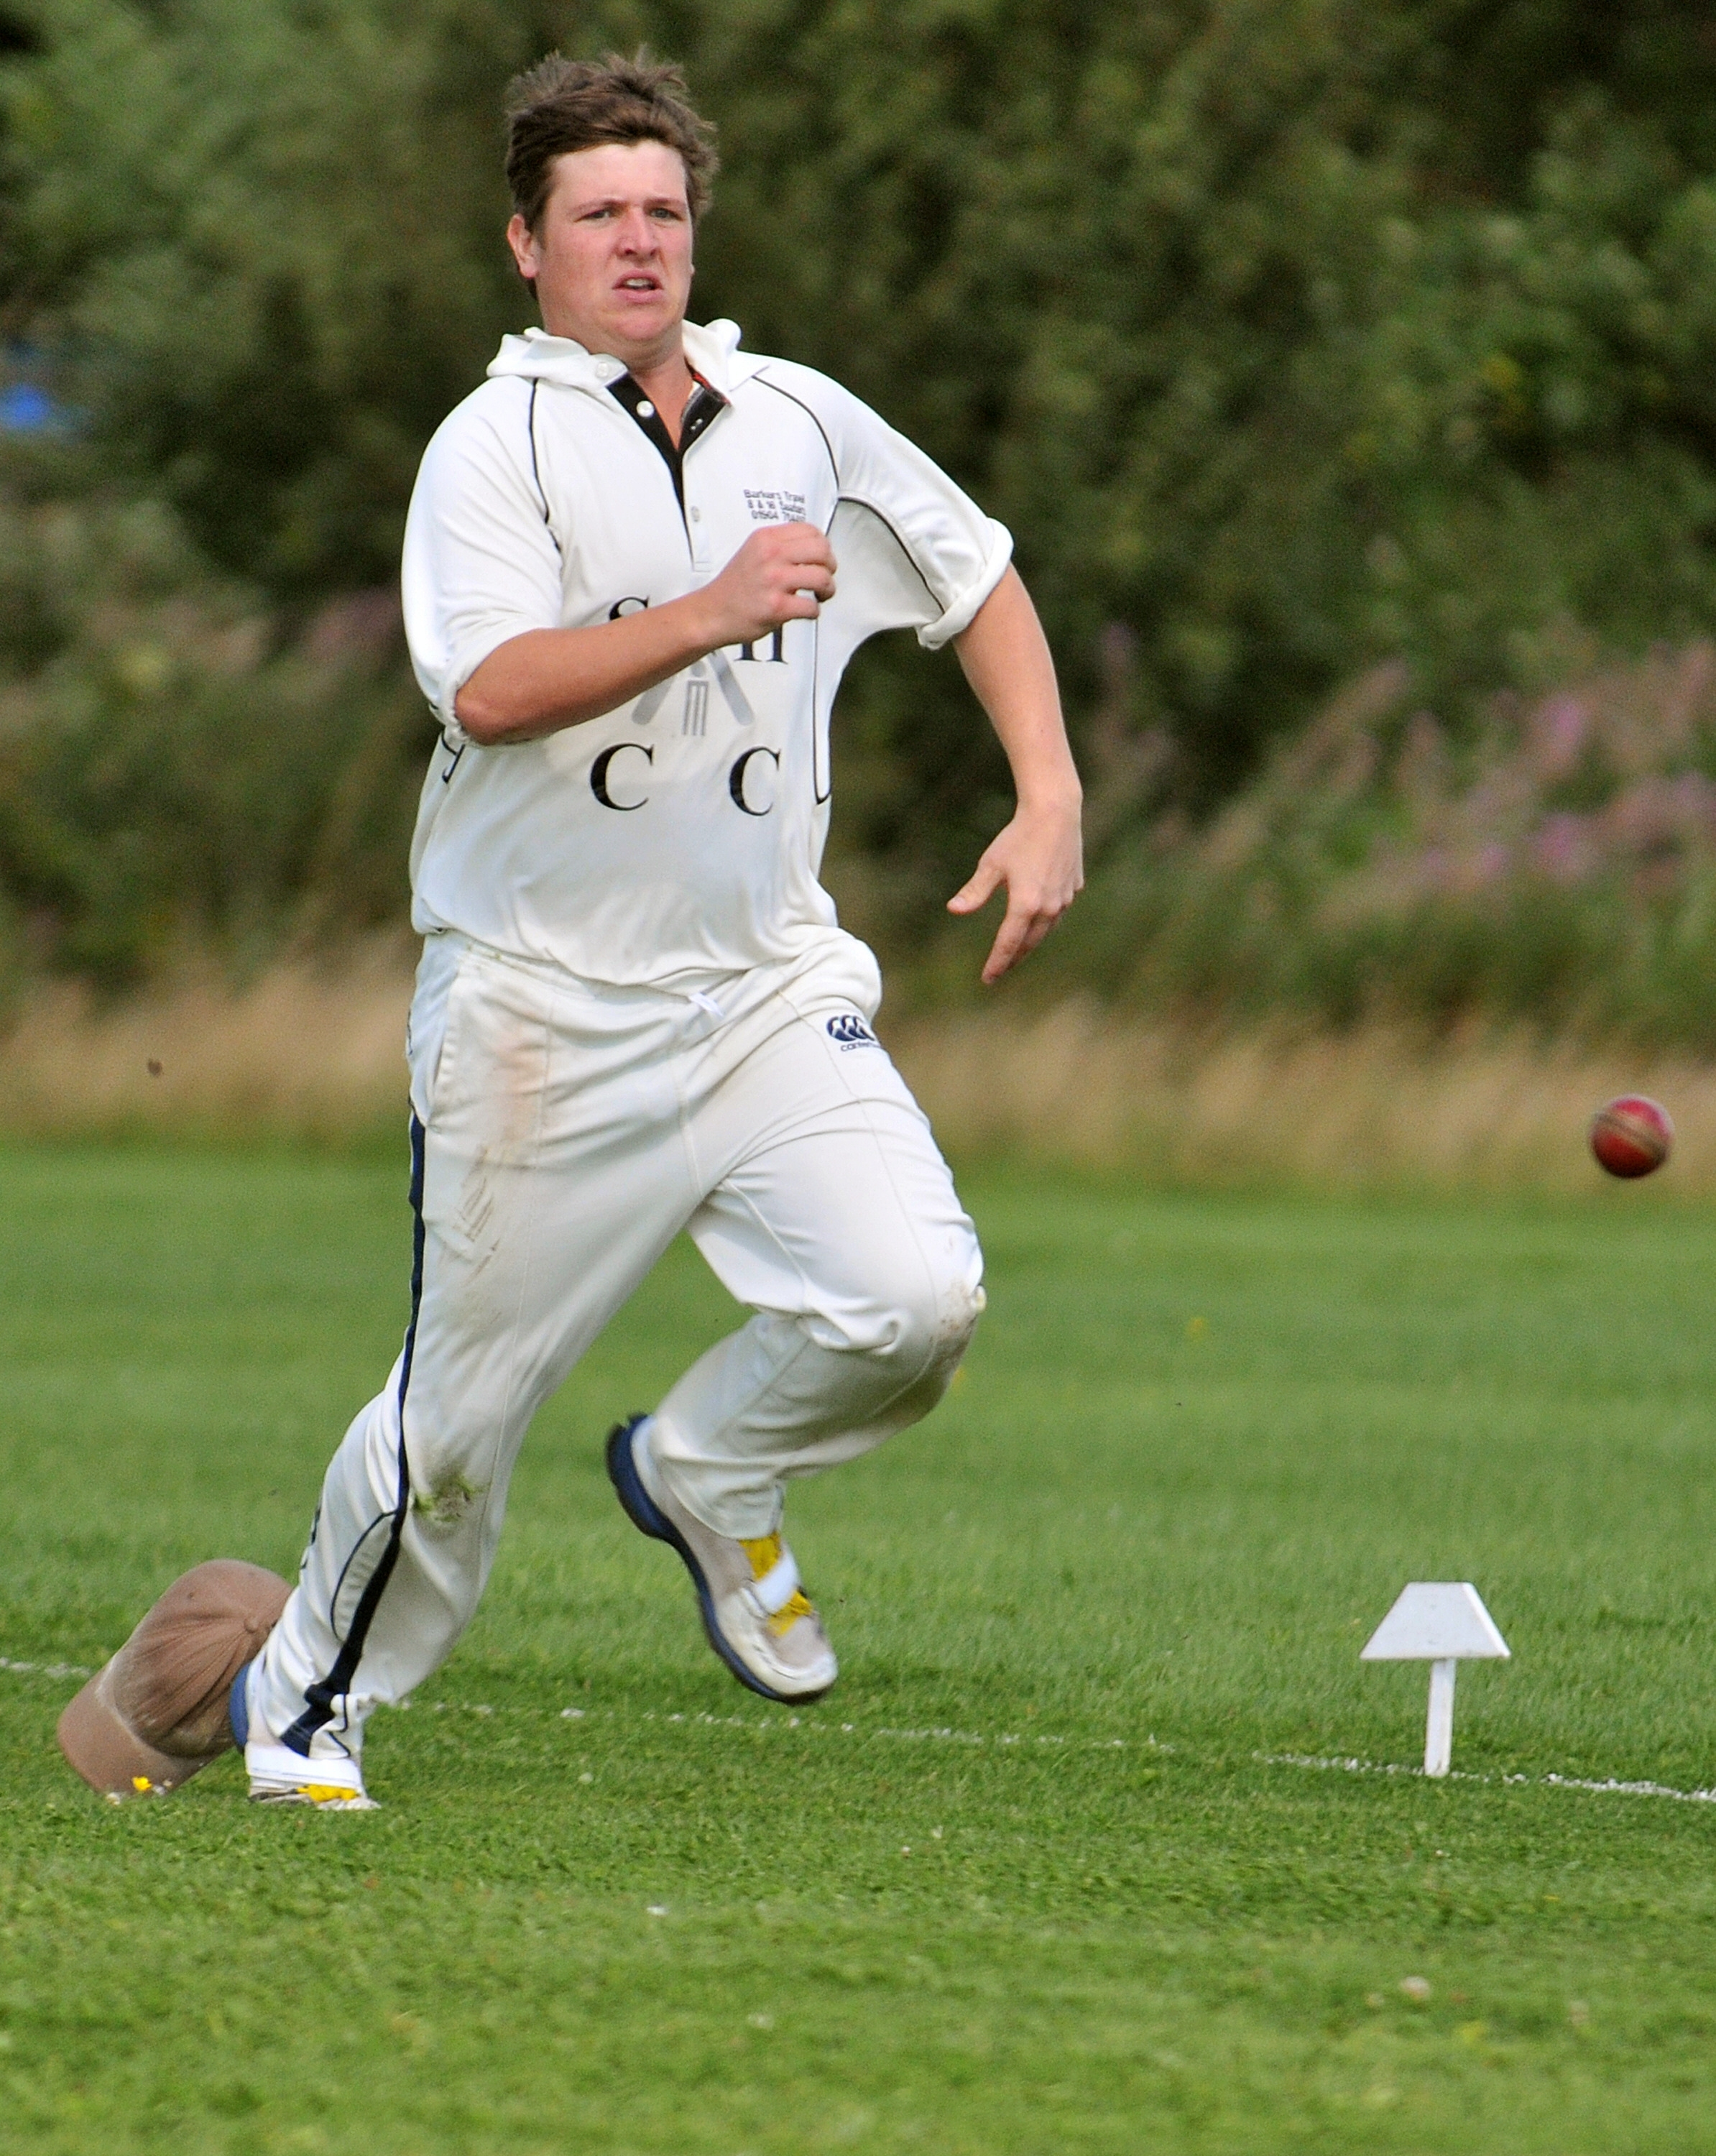 IN THE FIELD: Jamie Kerrison, who took 5-46 as Stockton & Hopgrove enjoyed an 11-run win against Malton & Old Malton in the HPH York Vale League